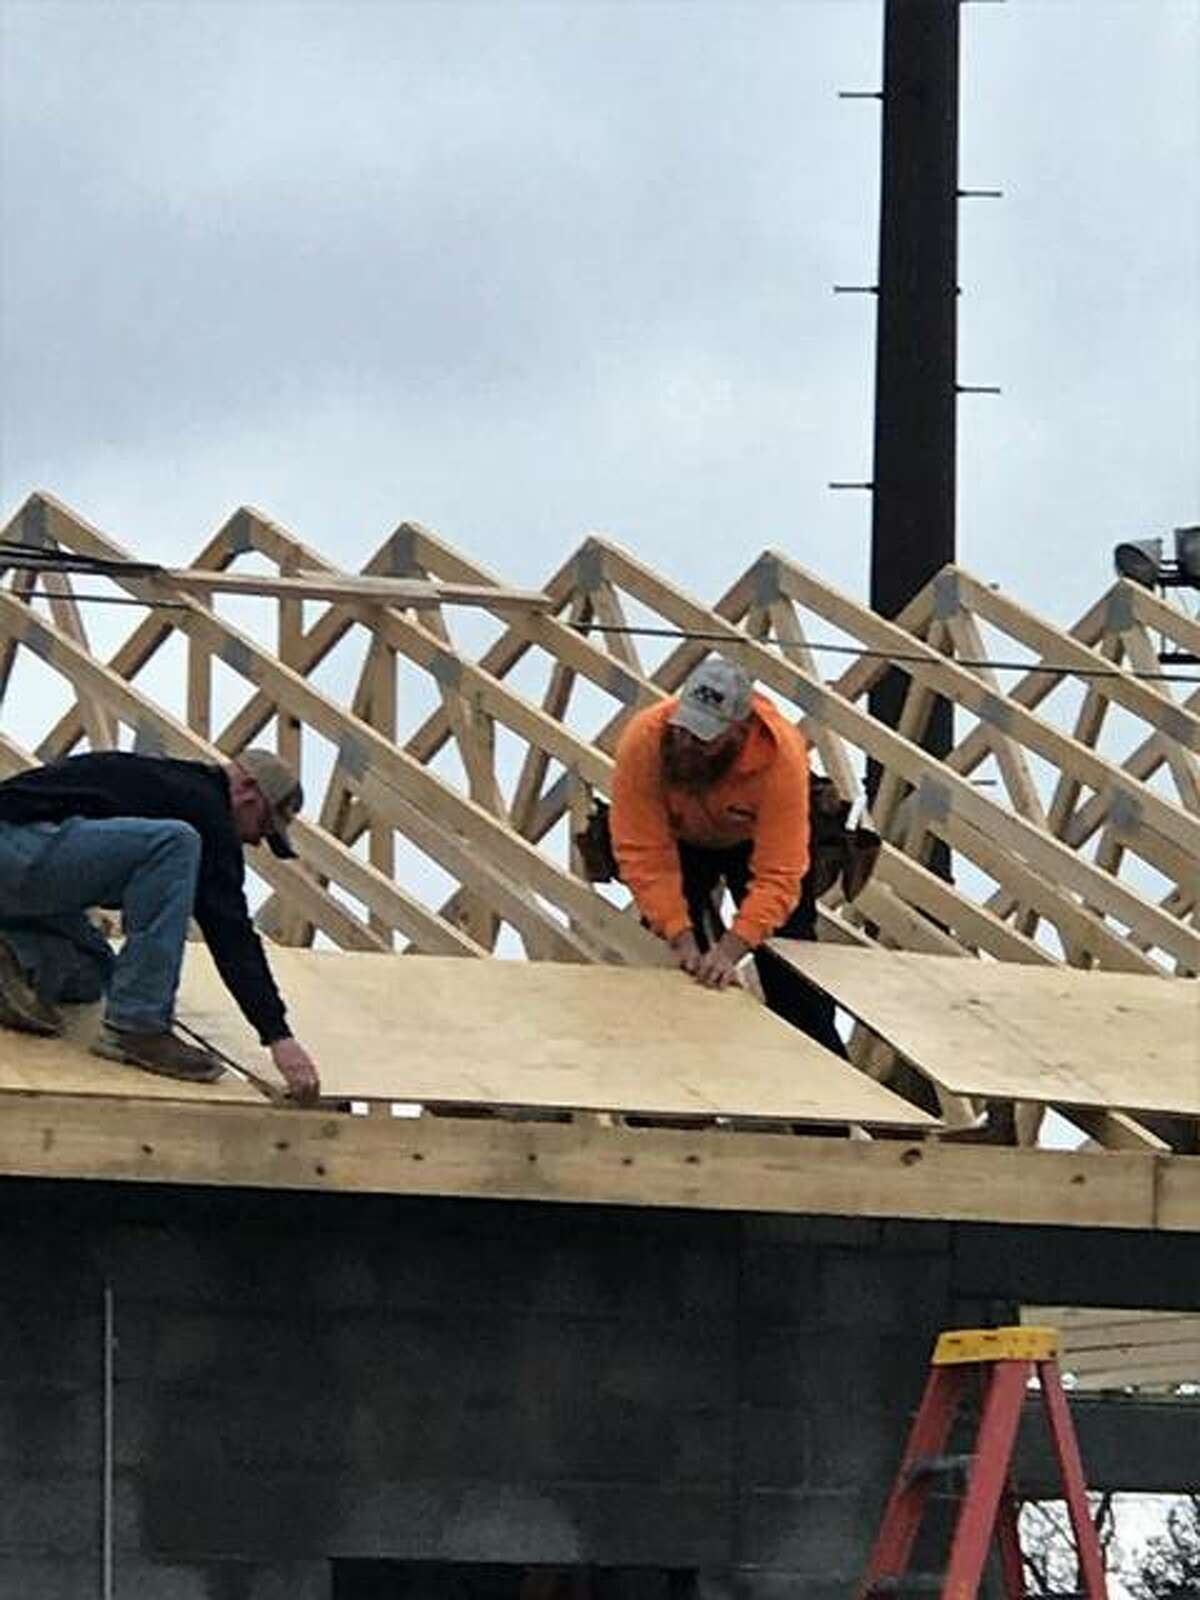 Volunteers from Jun Construction of Godfrey took advantage of Wednesday's warmer temperatures and installed roof trusses and sheeting on the evolving concession stand at Gordon F. Moore Community Park in Alton.